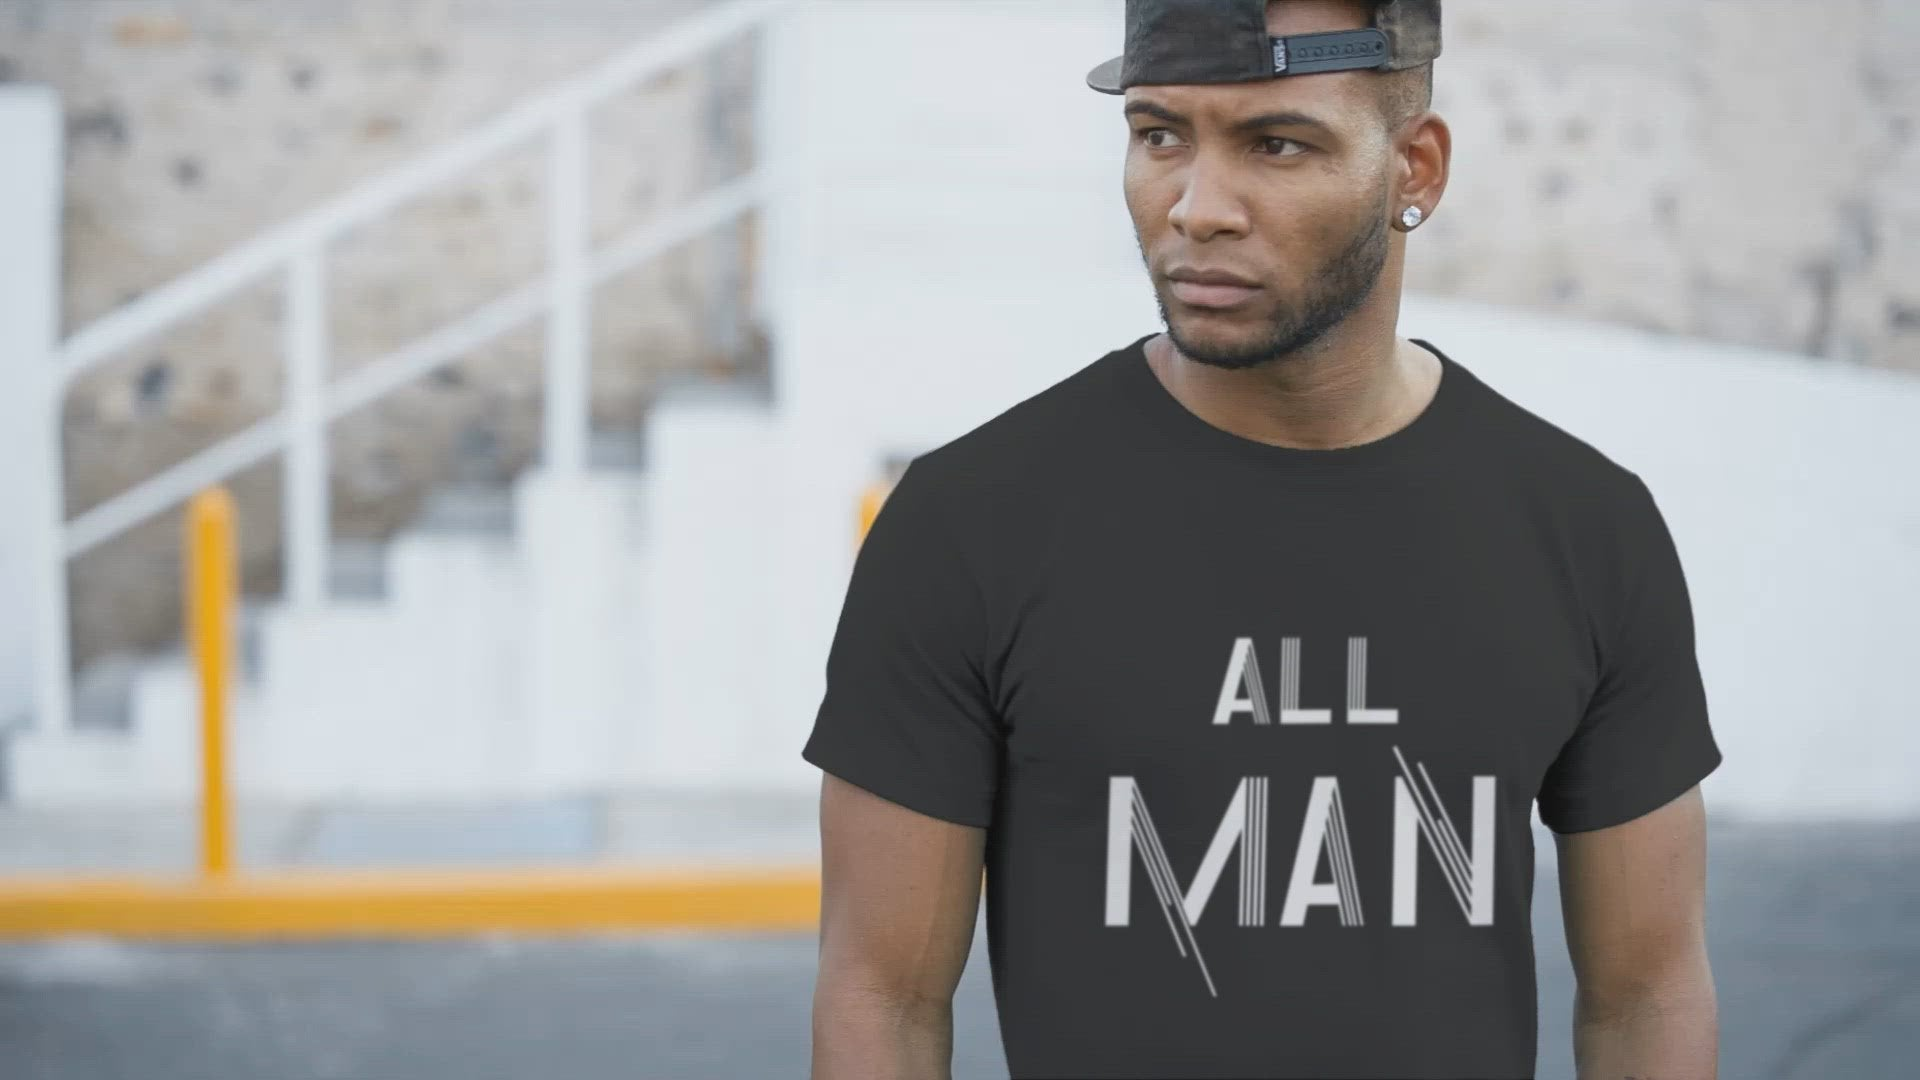 Limited Edition All Man T-Shirt